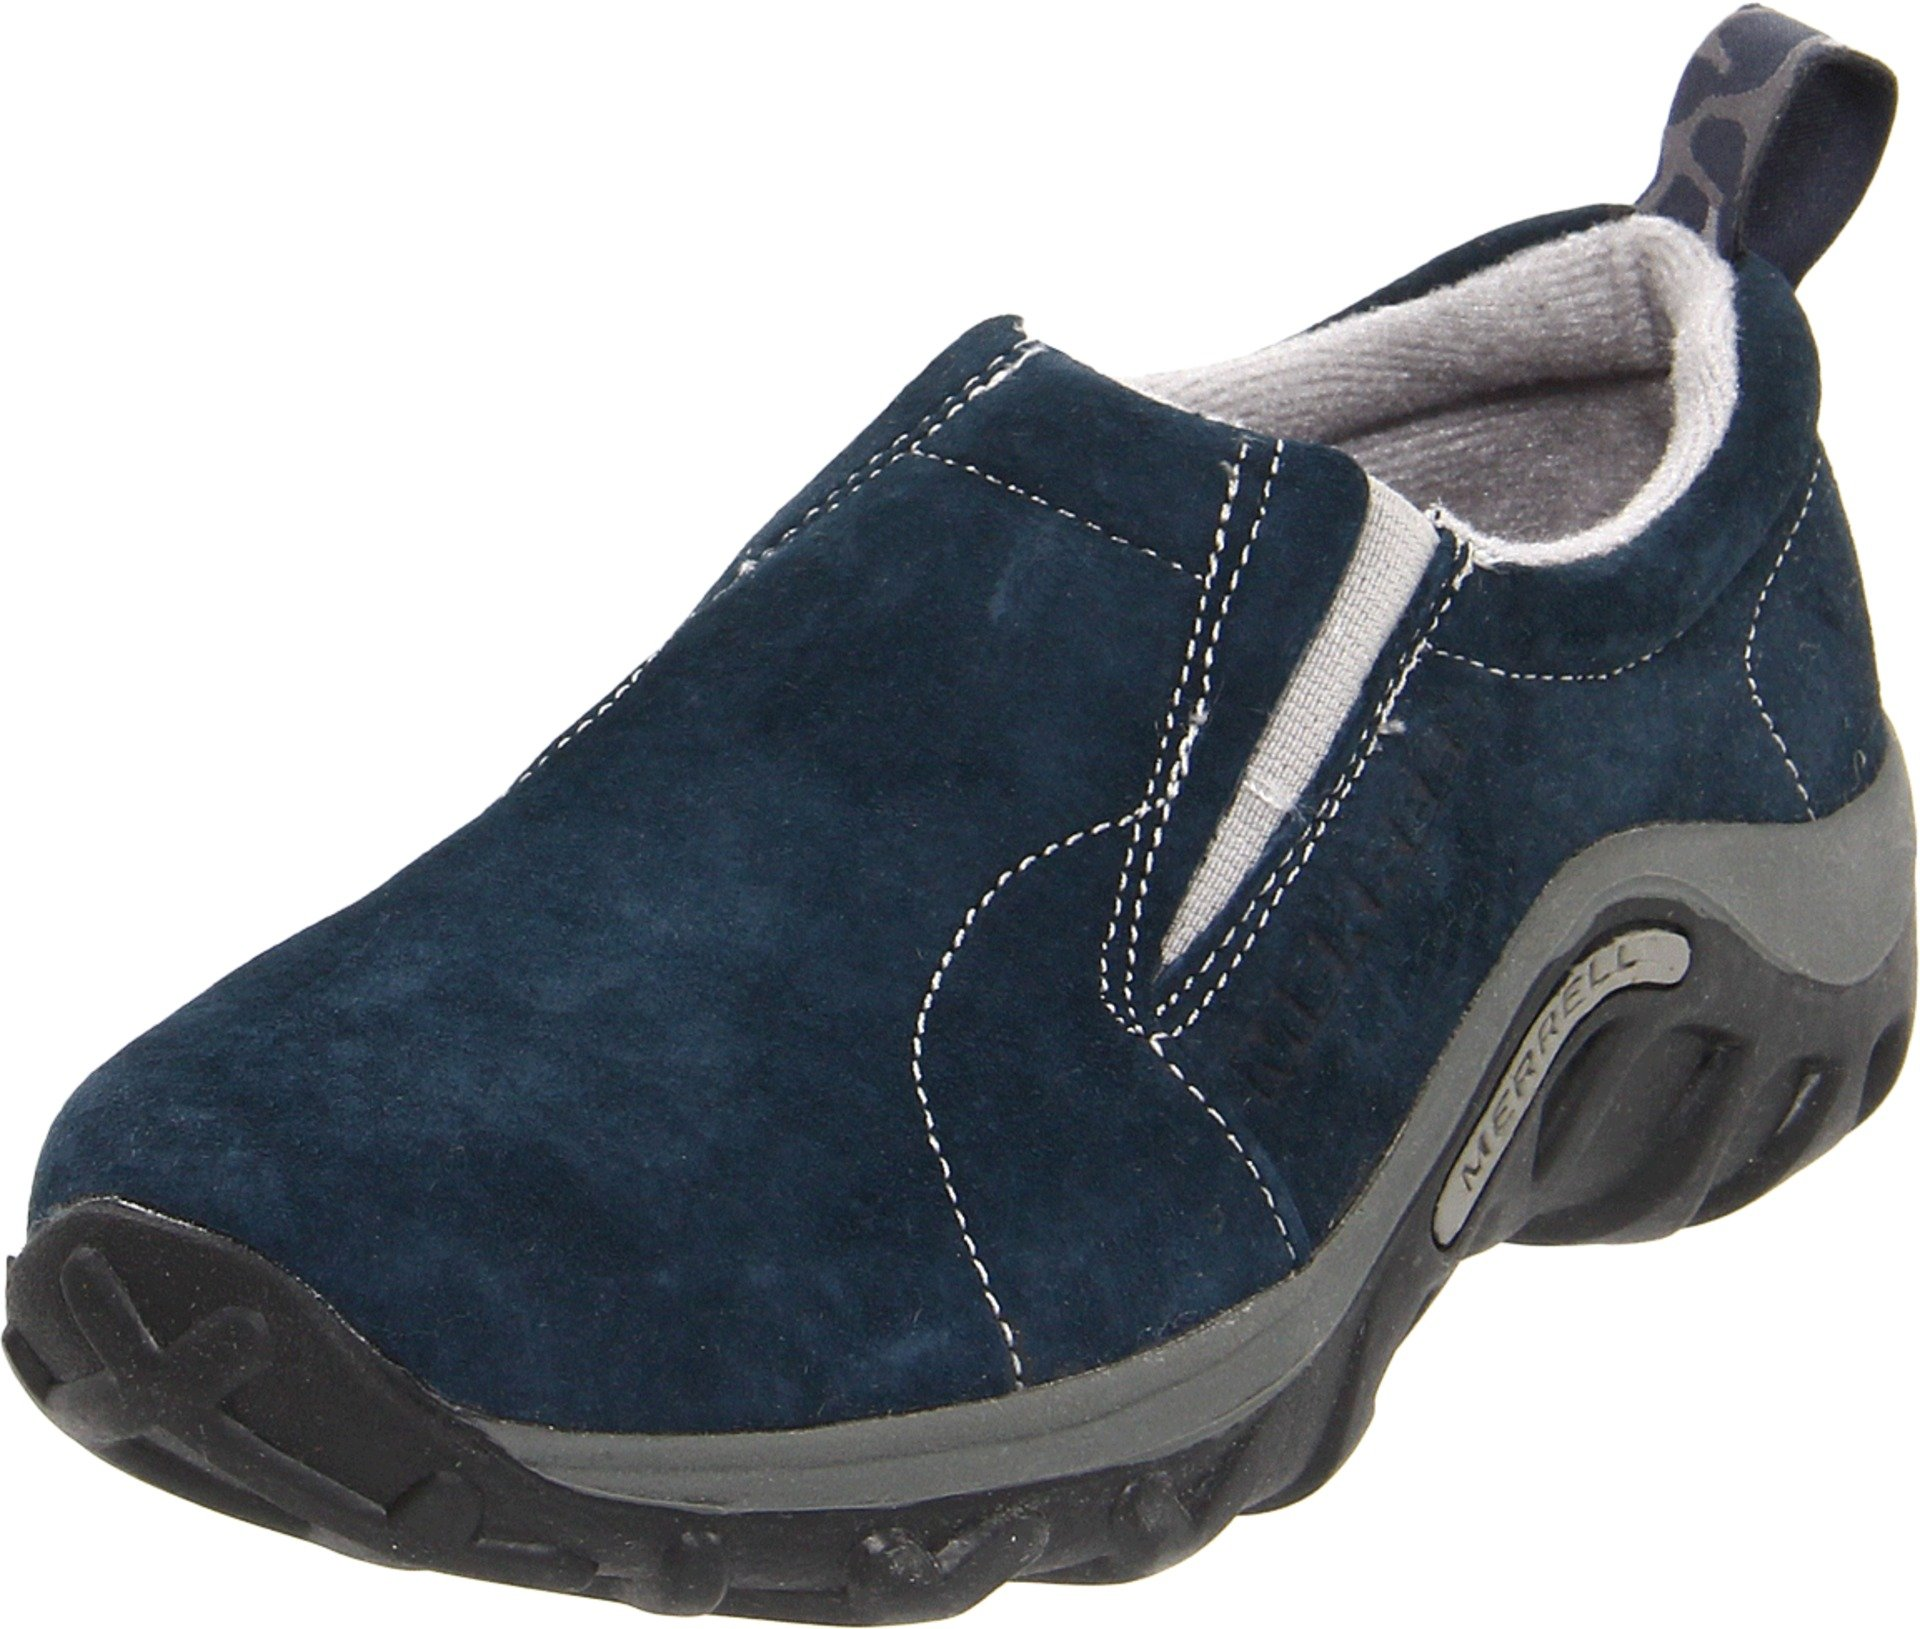 Merrell Jungle Moc (Toddler/Little Kid/Big Kid),India Ink,13.5 M US Little Kid